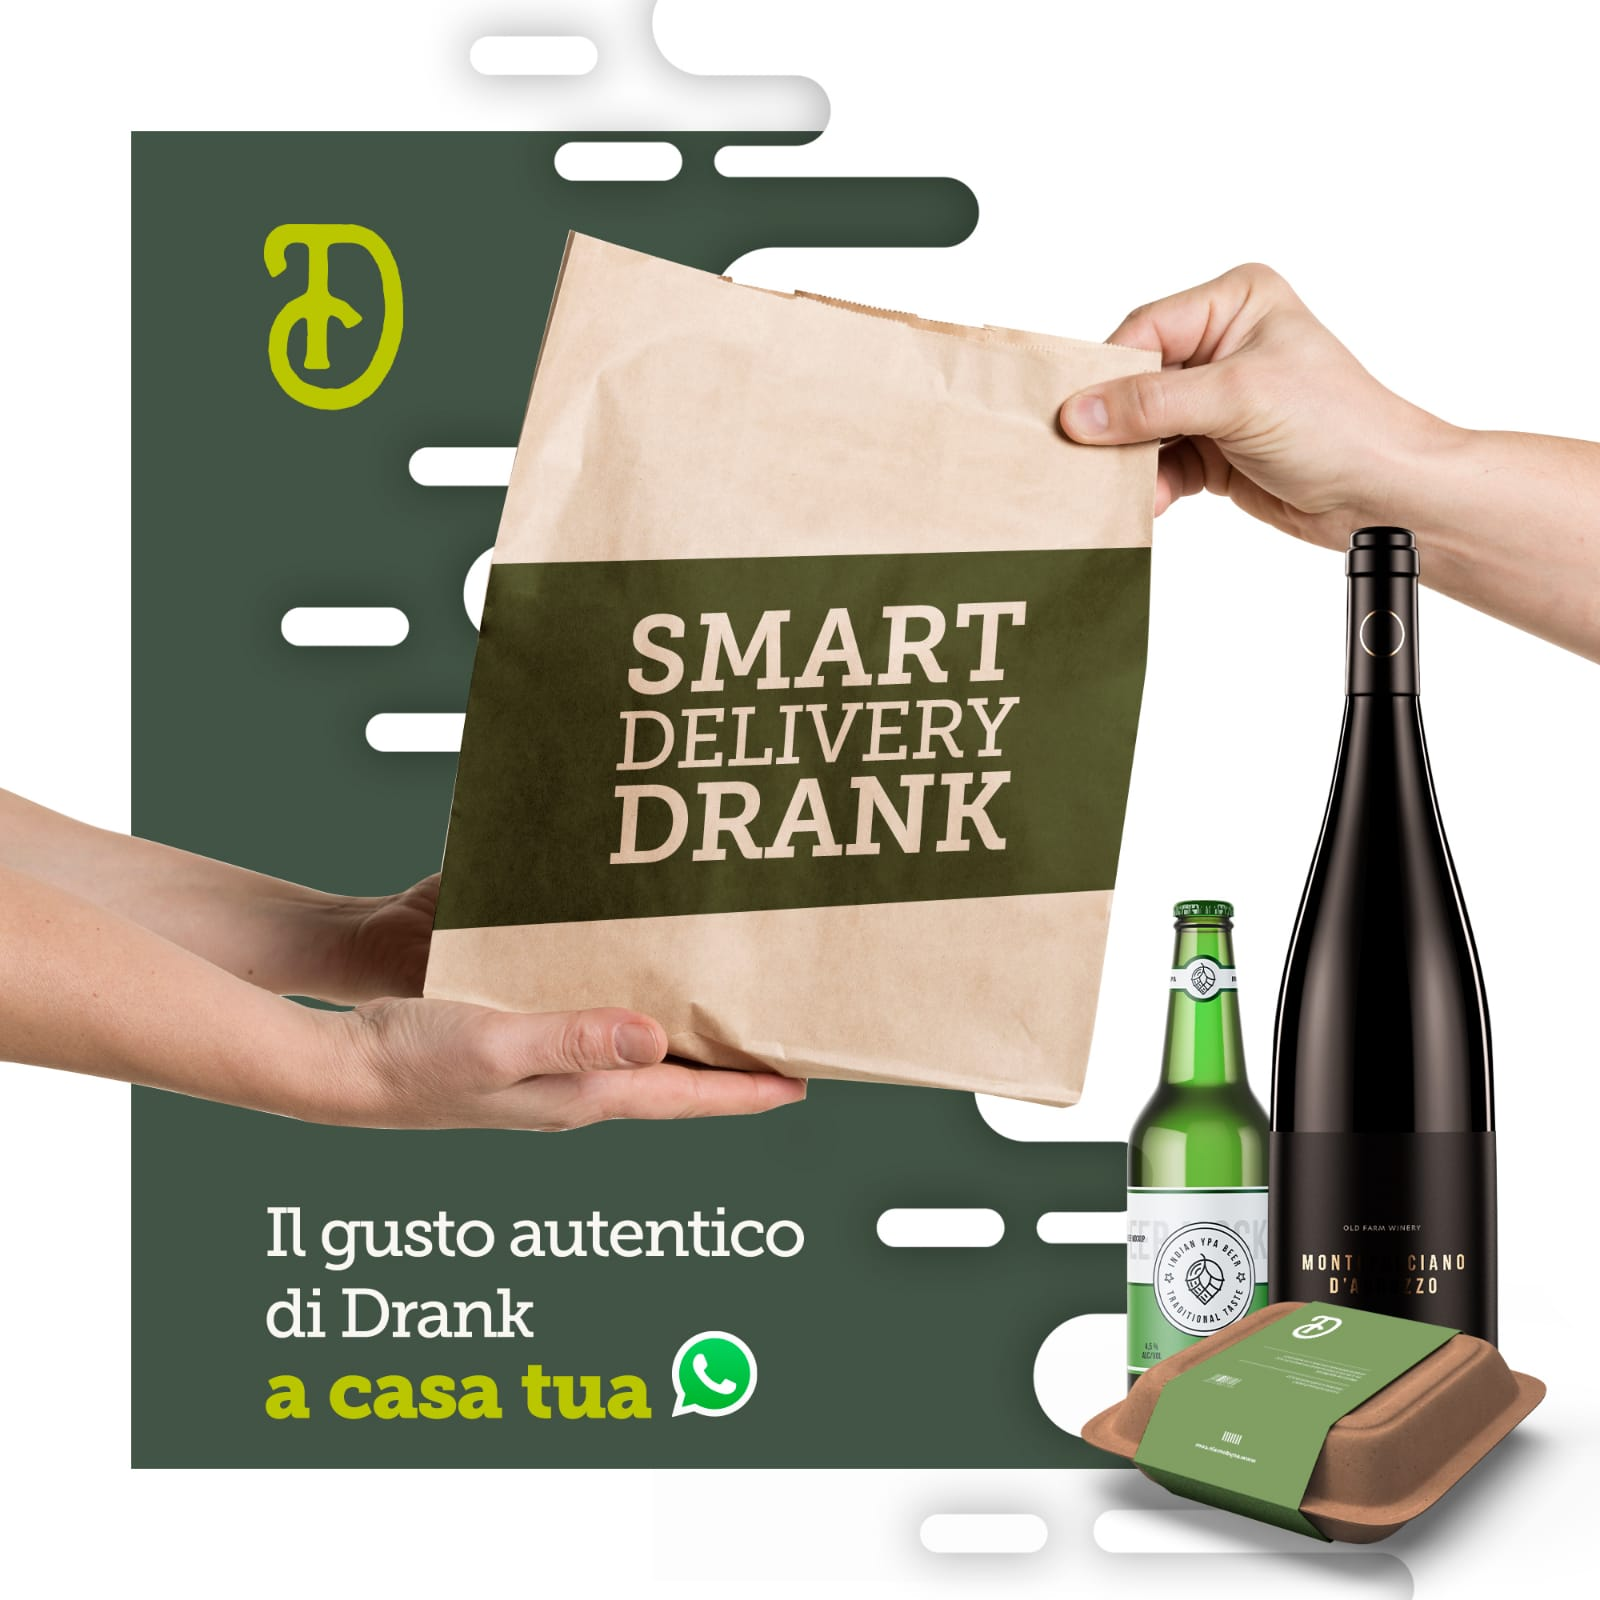 smart delivery drank